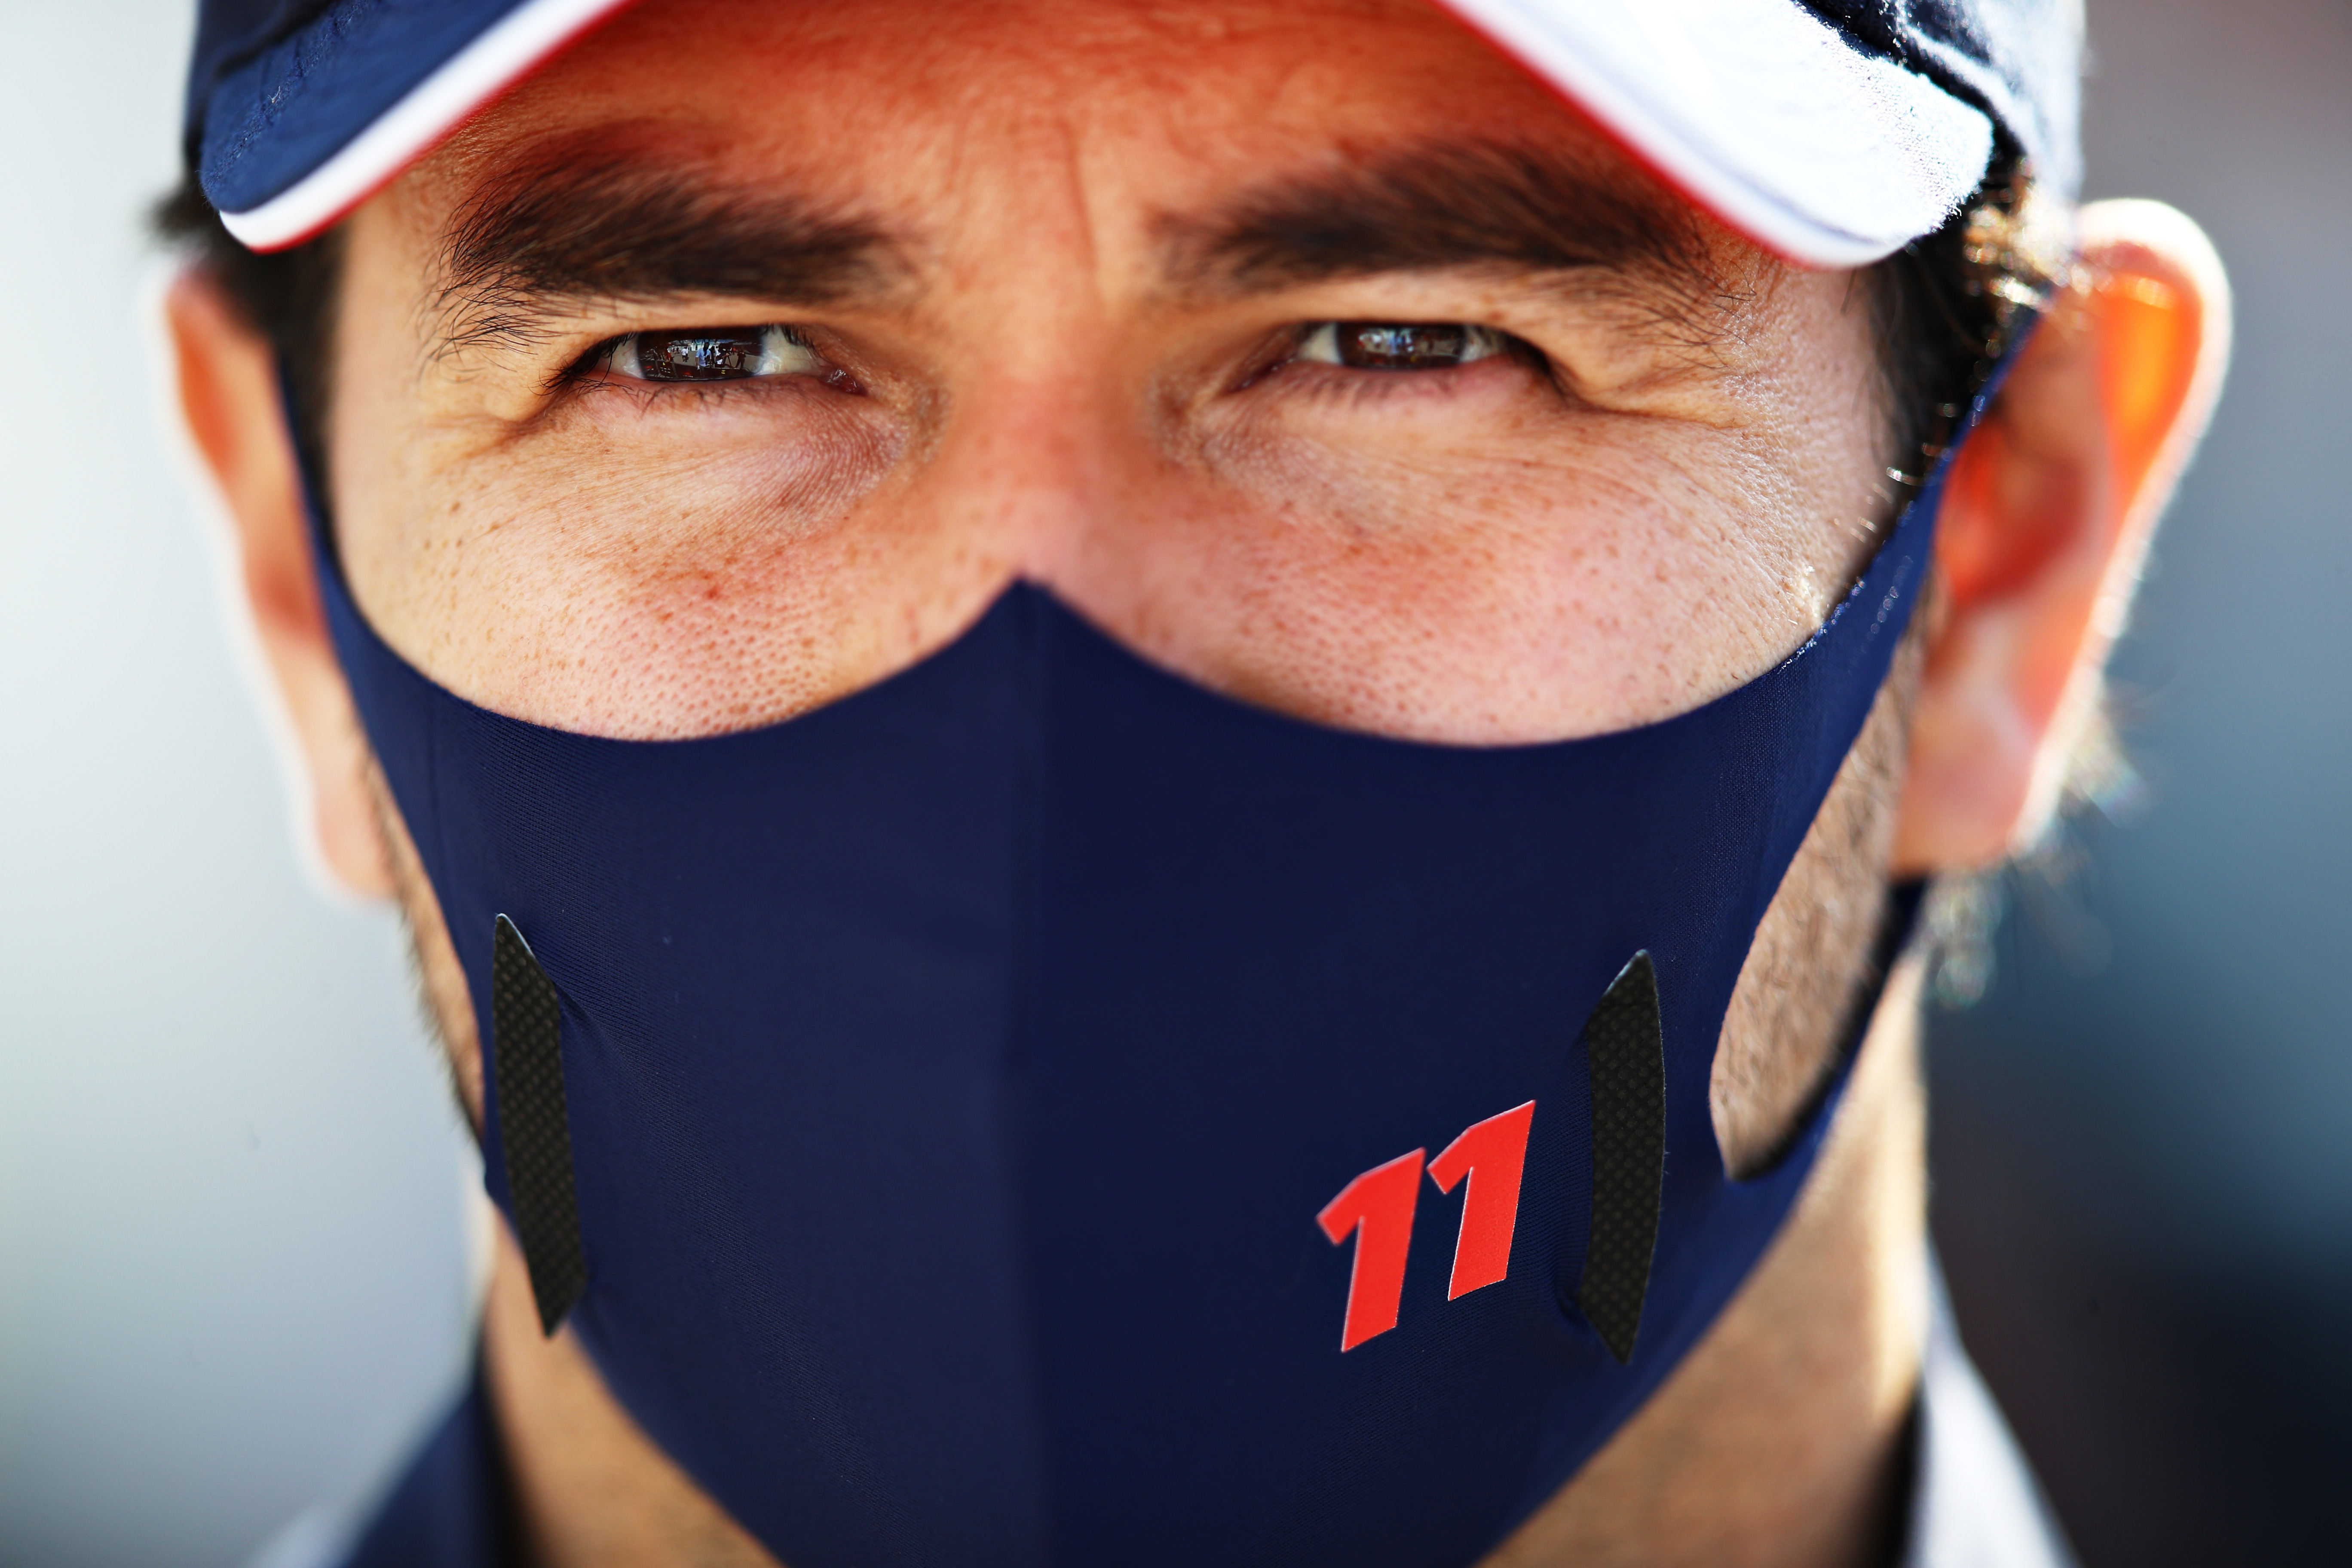 Formula 1 Drivers Chose Their Numbers for the 2021 Season Using Soccer Players and Superstitions